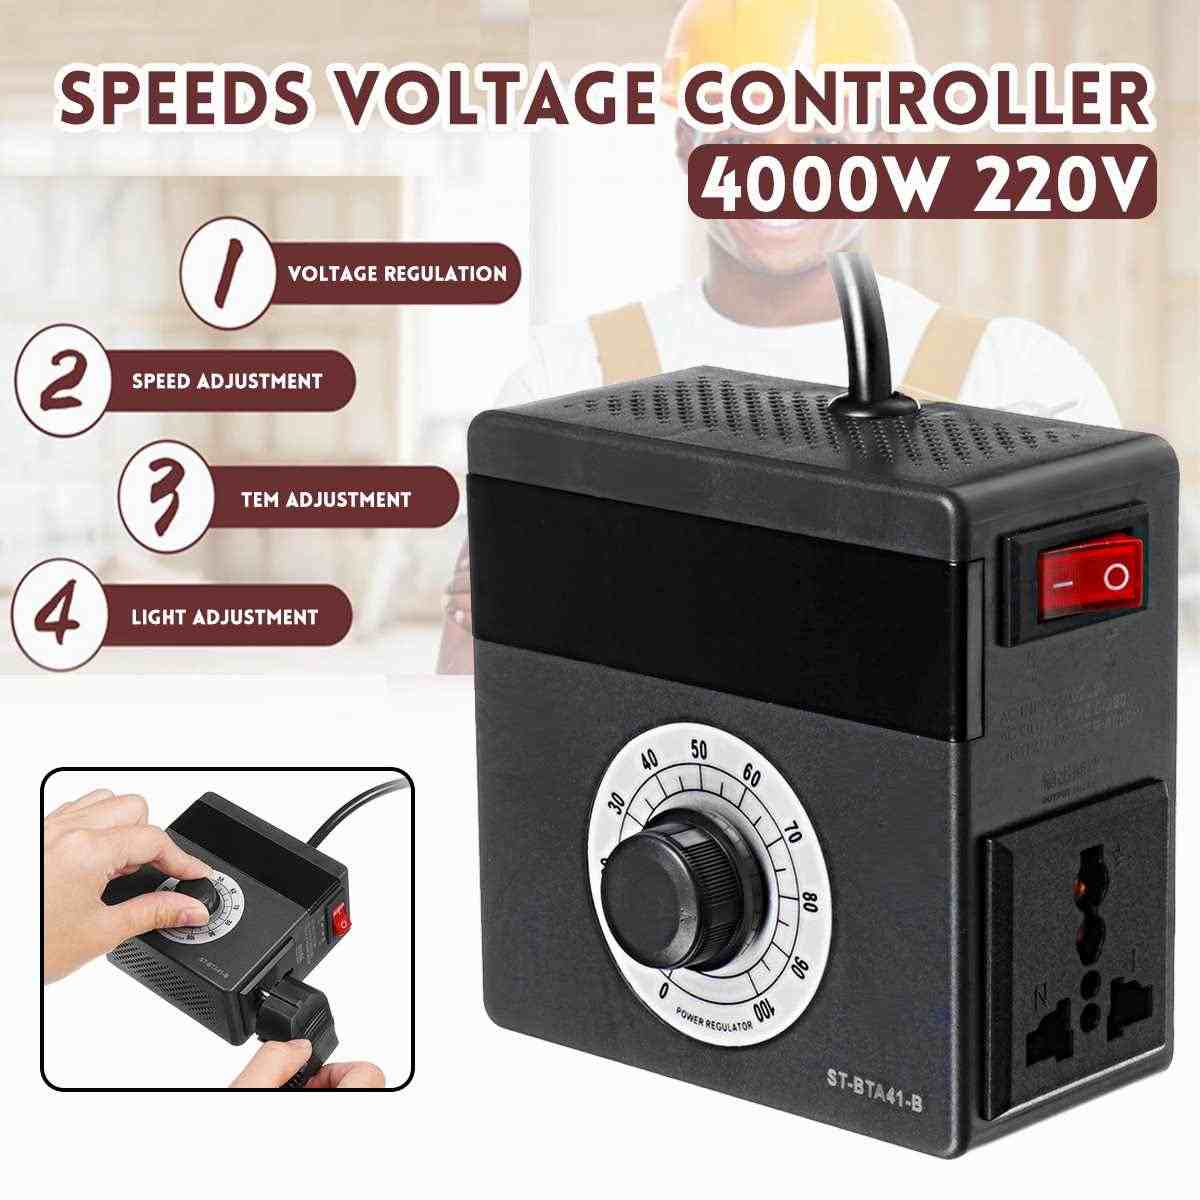 New Arrival 2019 220V 4000W EU Plug Electronic Voltage Regulator Temperature Motor Fan Speed Controller Dimmer Electric Tools